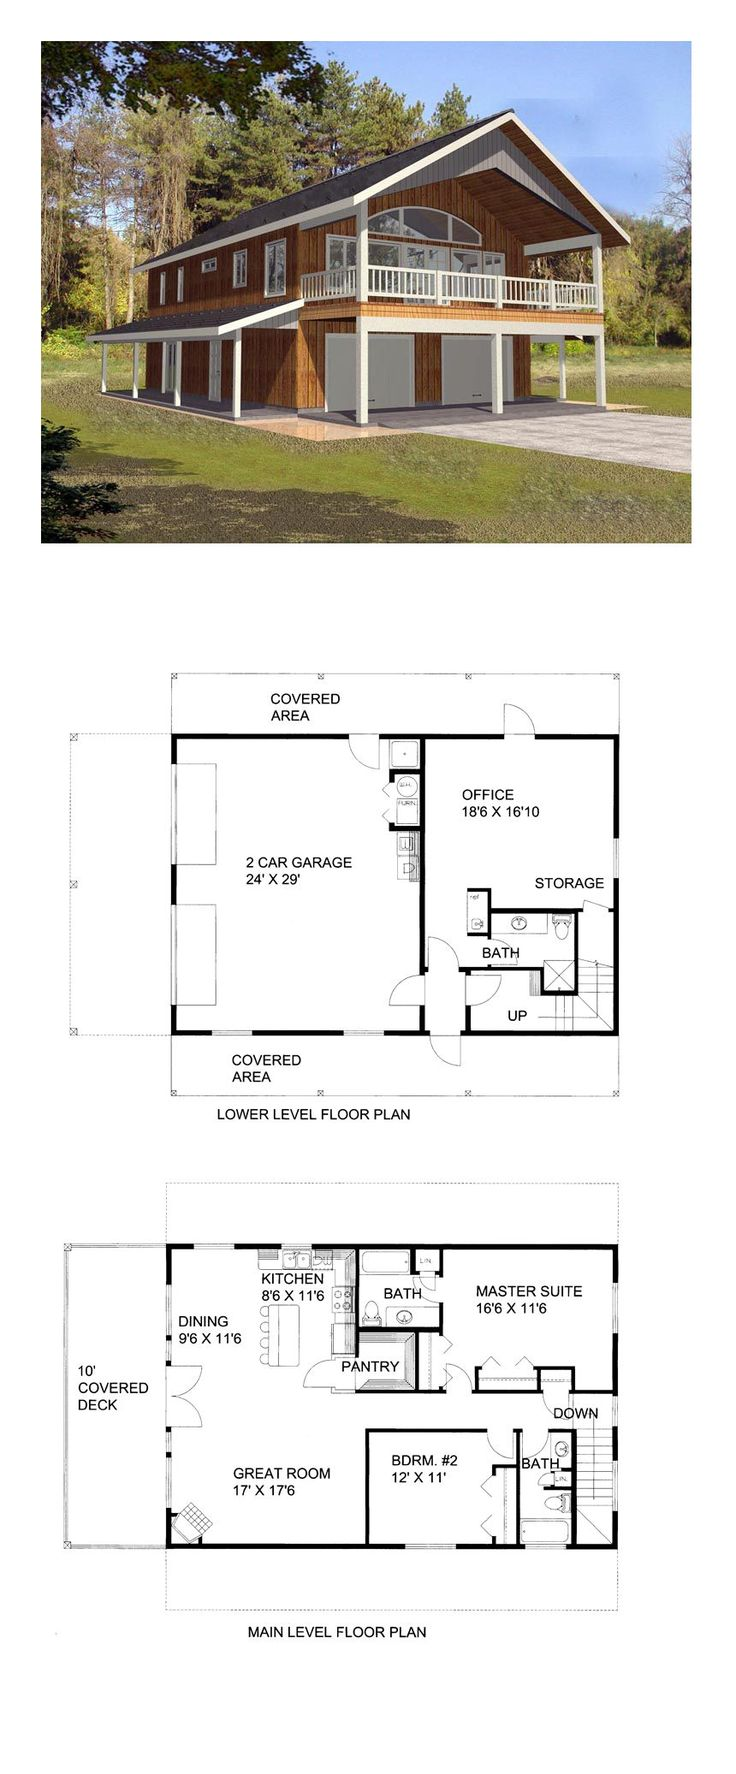 25 best ideas about garage apartment plans on pinterest for Garage plans with apartment above